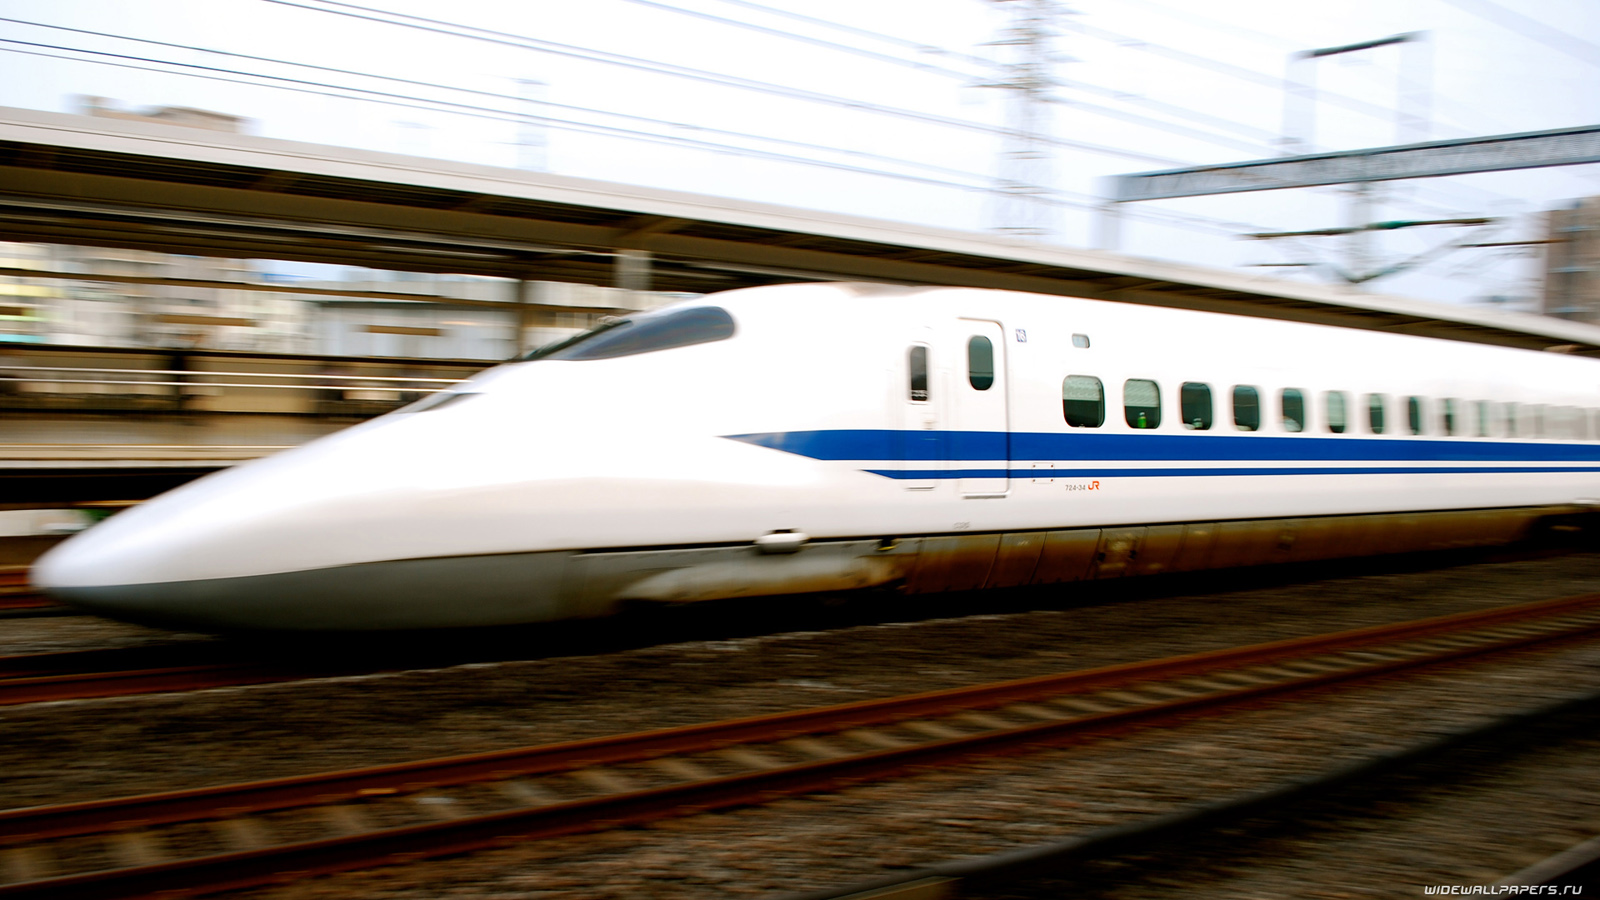 Japan High speed trains desktop wallpapers HD and wide 1600x900